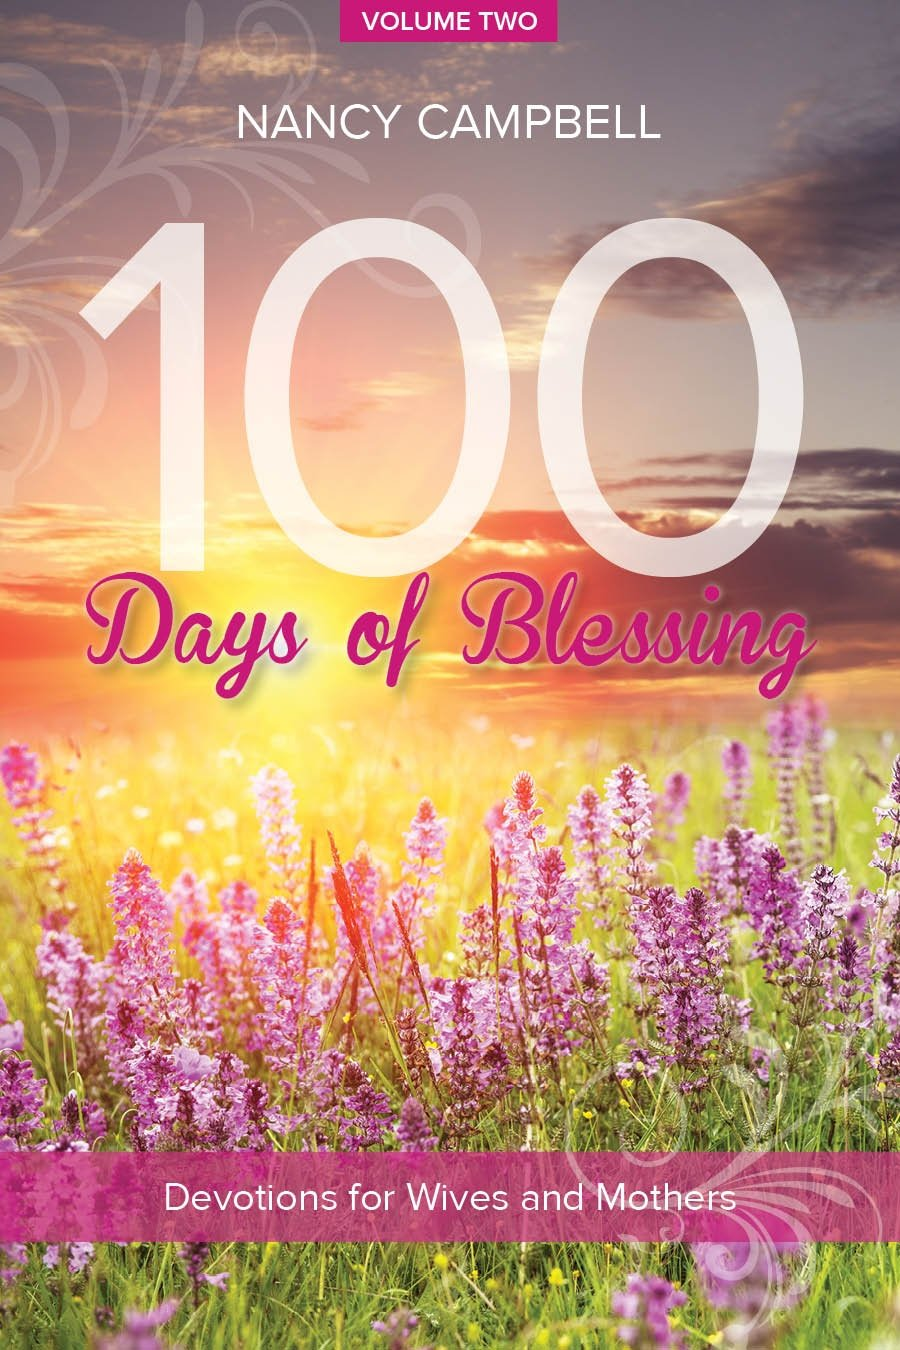 100 Days of Blessing, Volume 2: Devotions for Wives and Mothers PDF